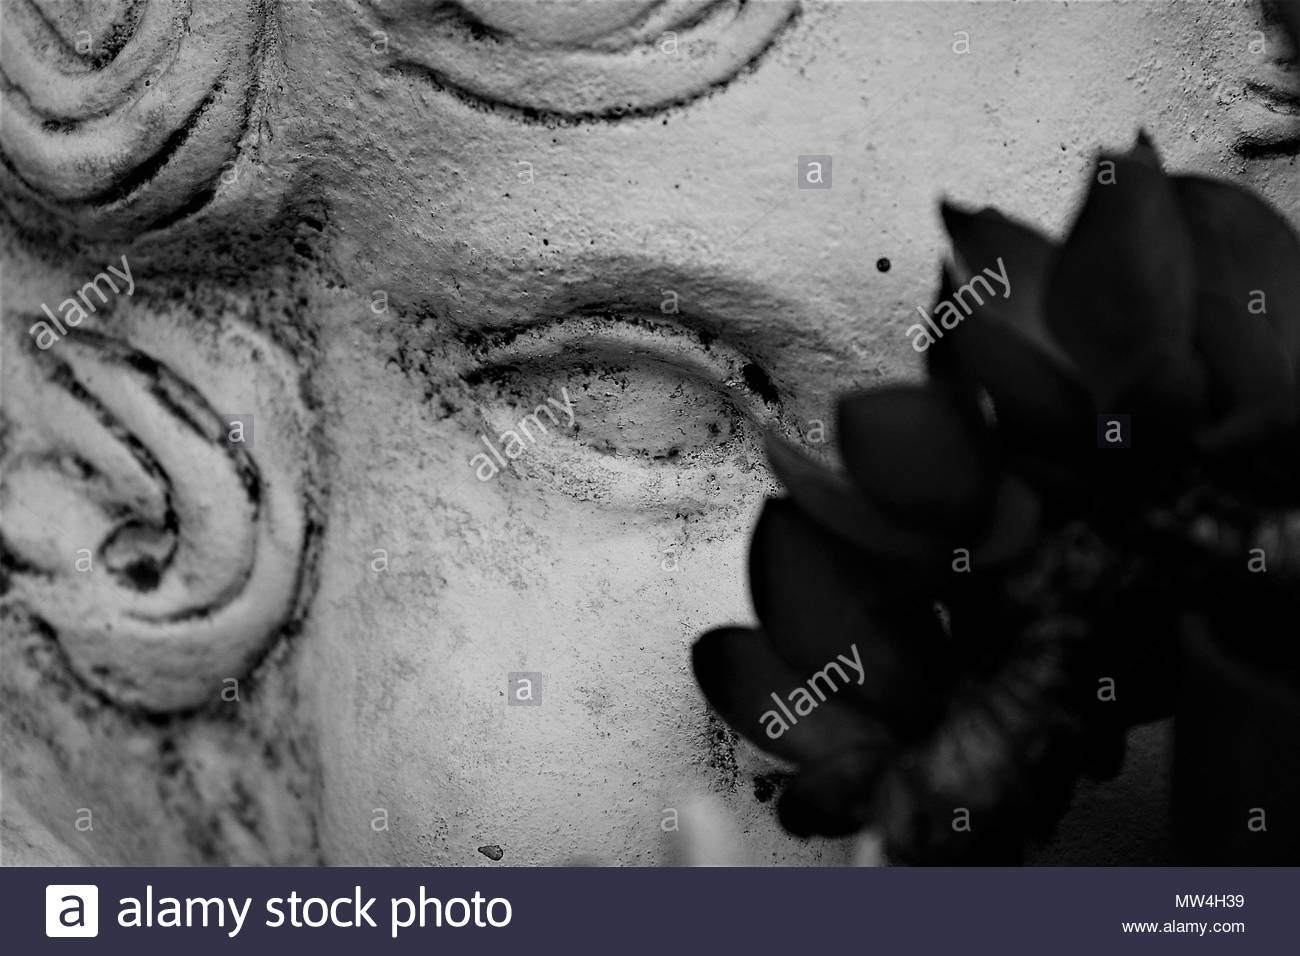 Closeup black and white photograph of the face of an angel statue slightly obscured by blurred plant